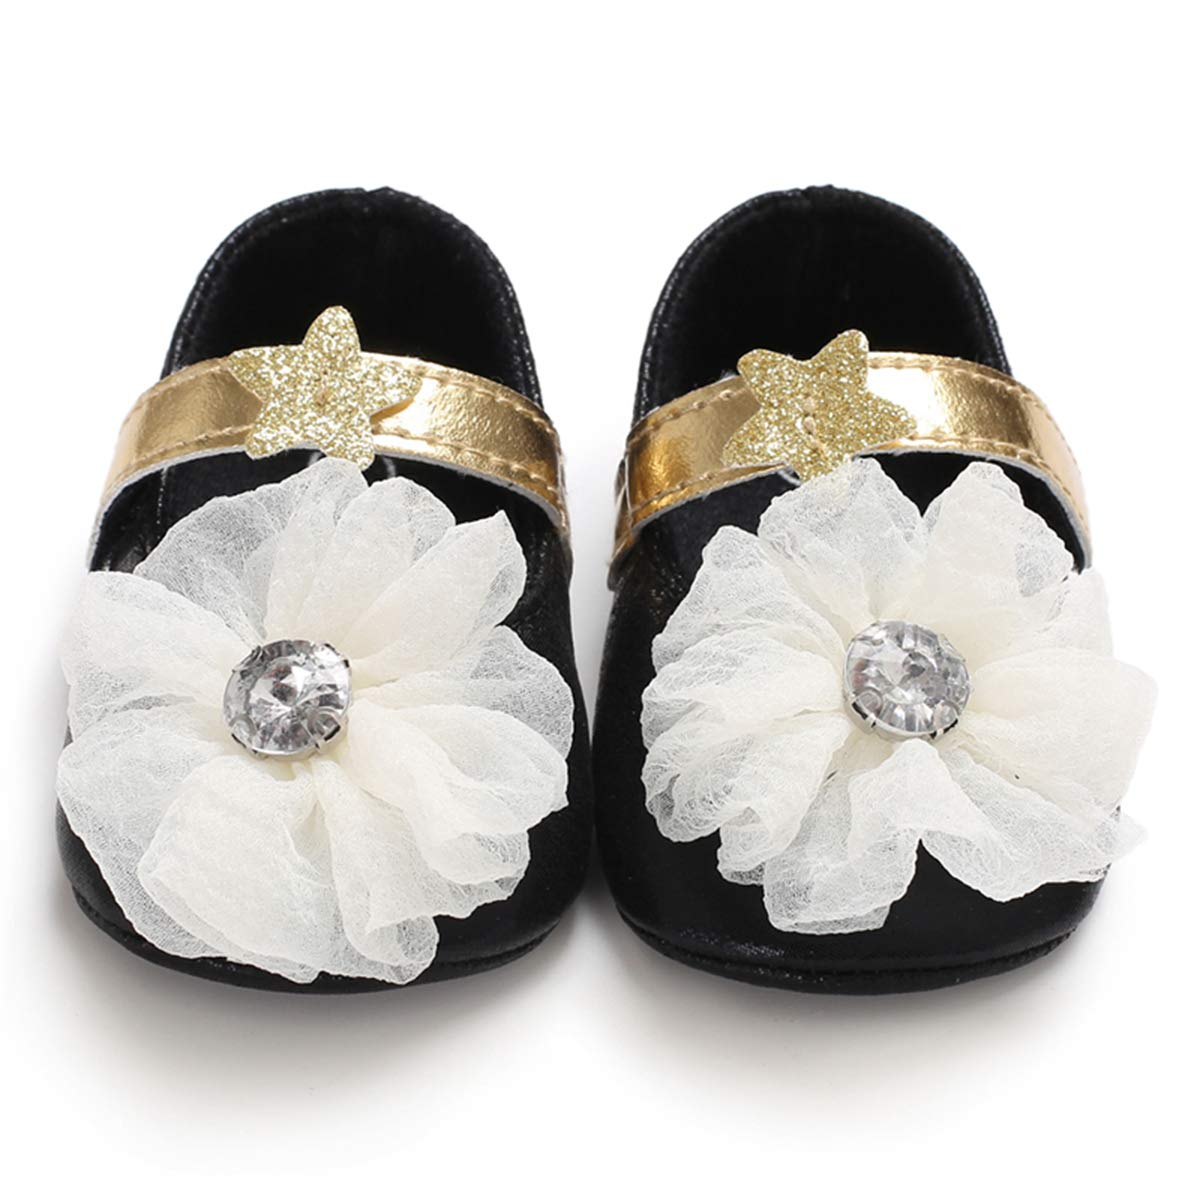 Infant Baby Girls Dress Shoes Soft Sole Anti-Slip Toddler Bowknots Flowers Princess Party Bright Leather Flats